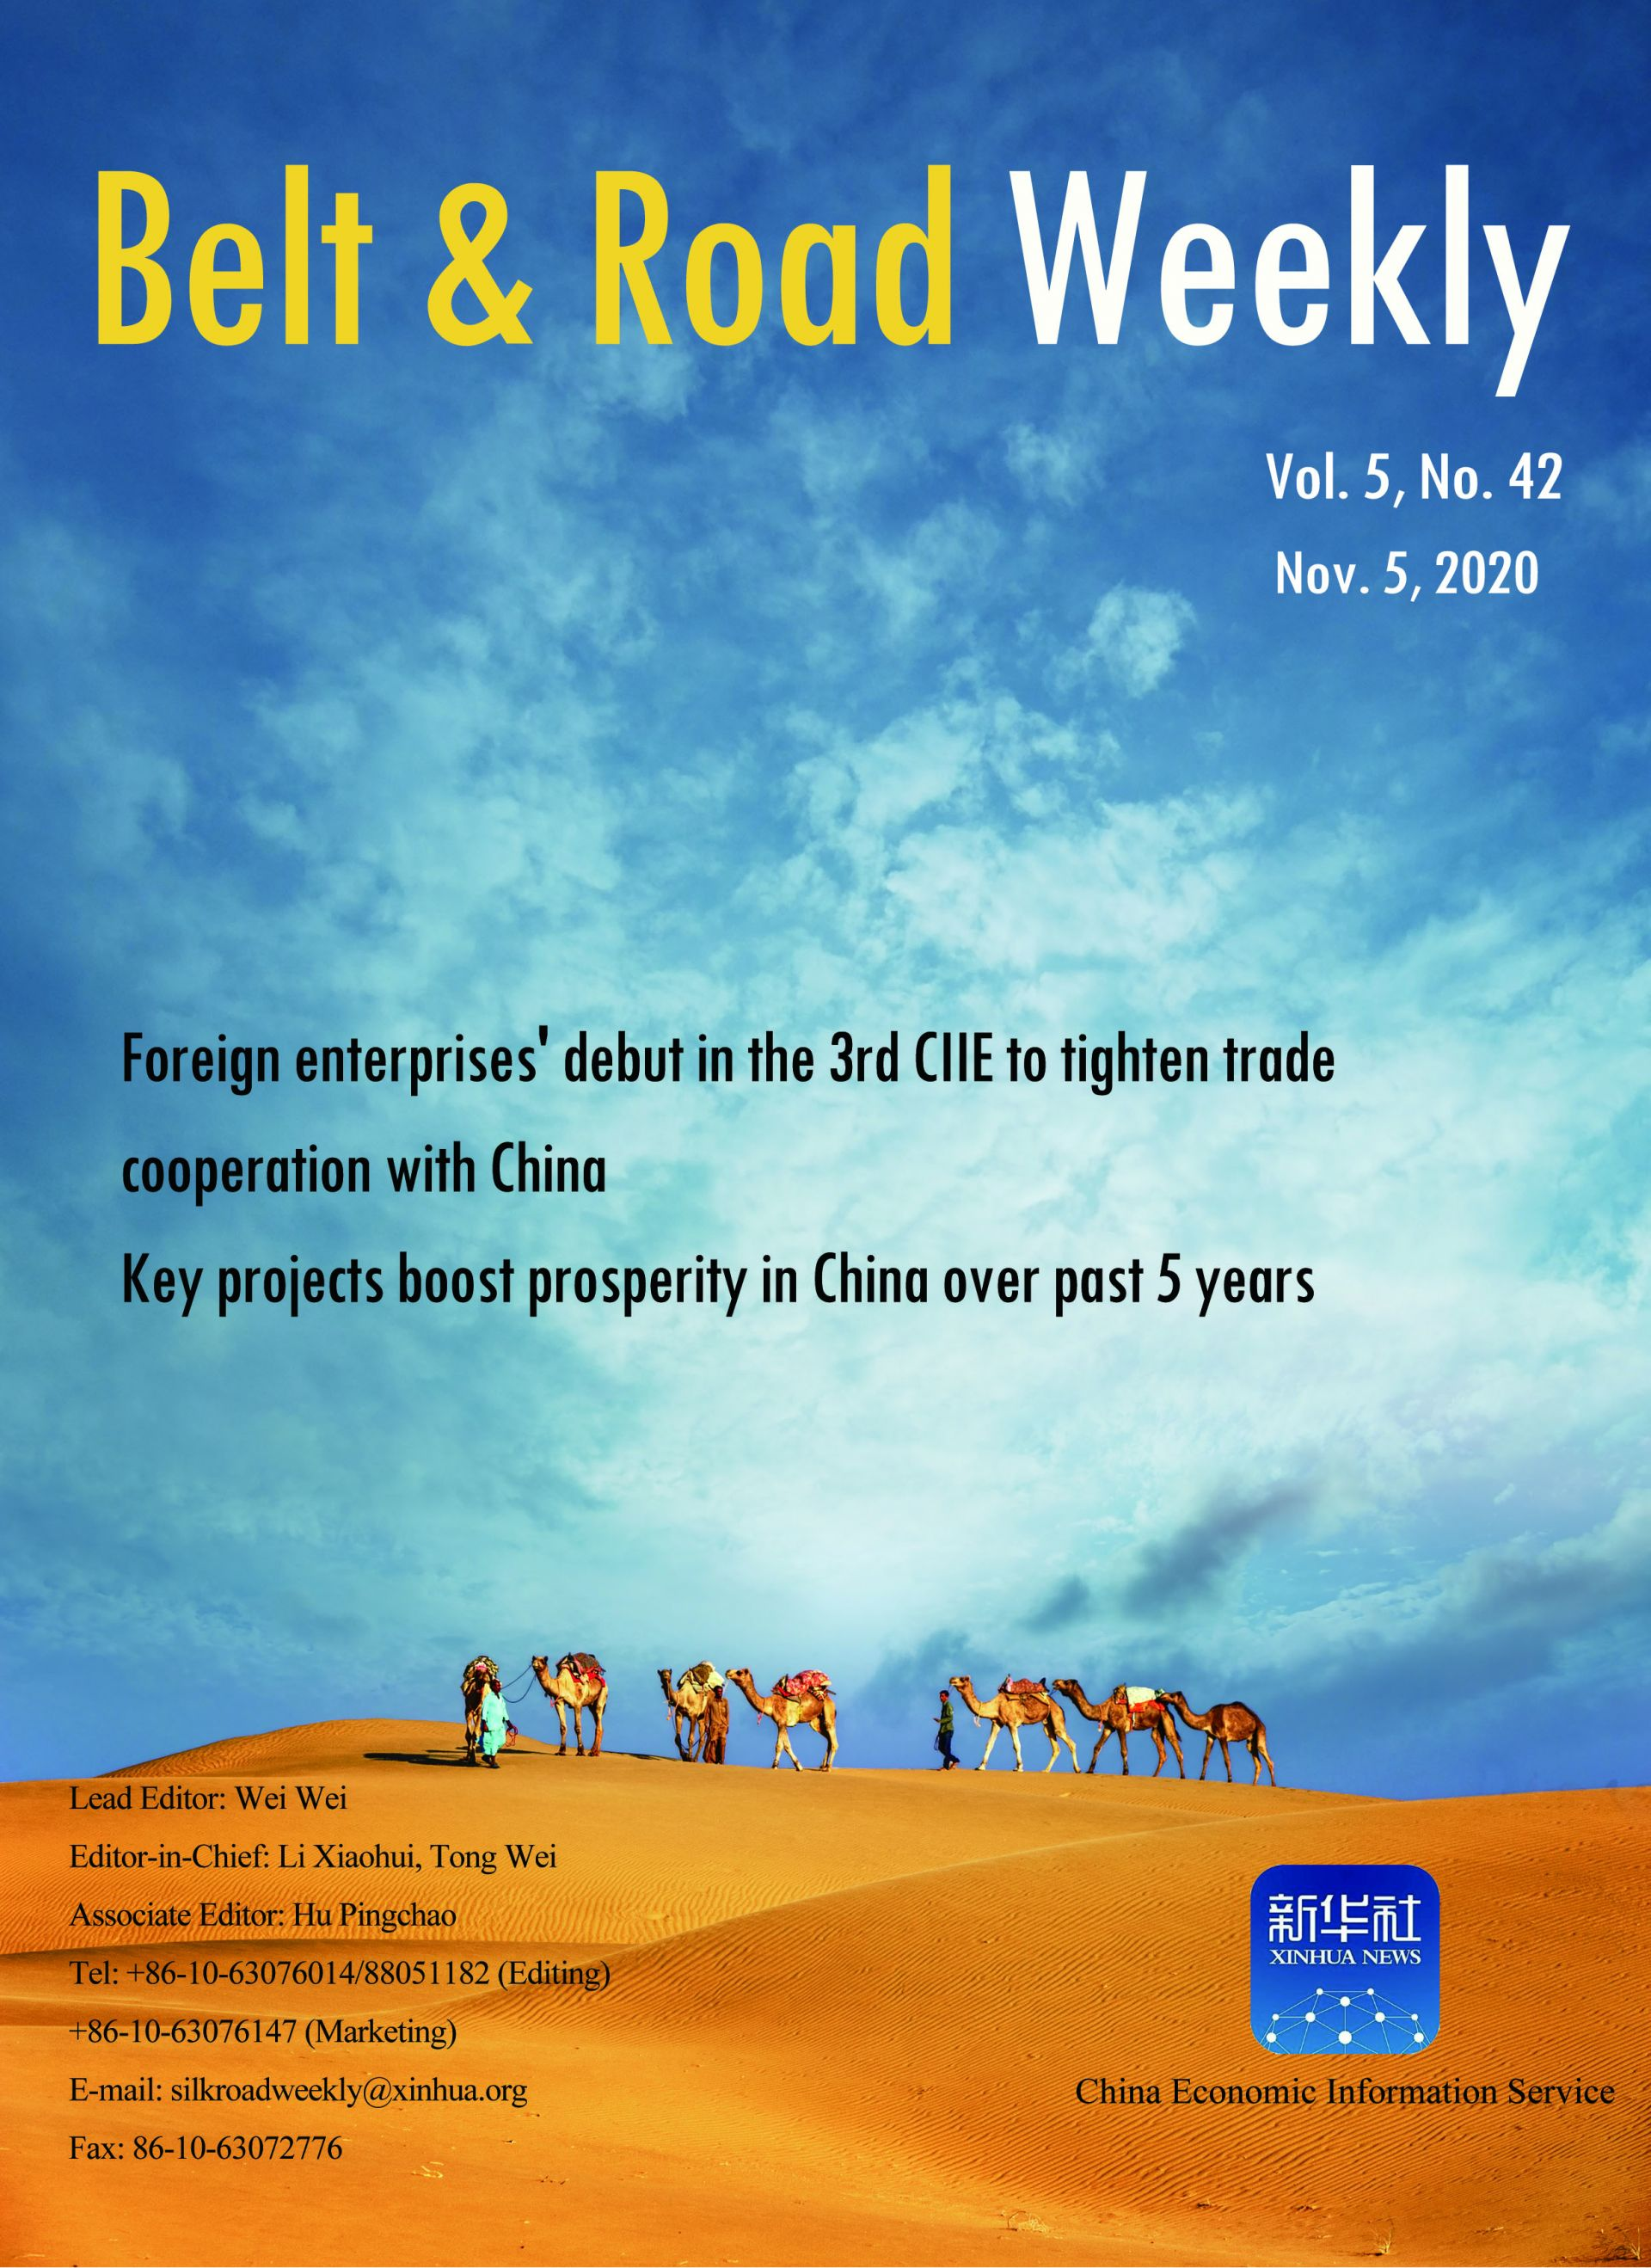 Belt and Road Weekly Vol. 5 No. 42